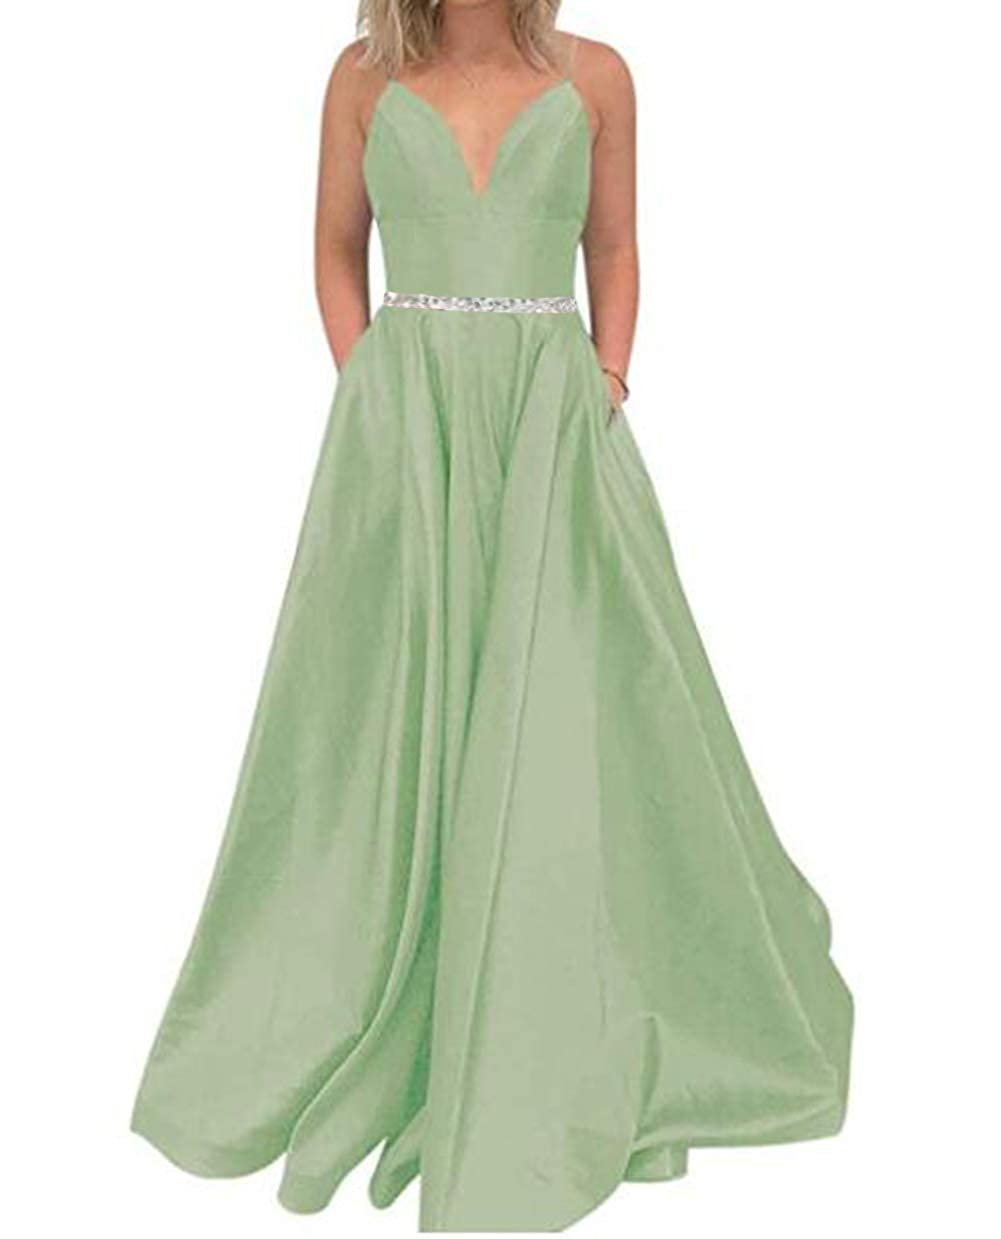 Sage Tsbridal Women's A Line Bead Prom Dresses V Neck Satin with Pockets Evening Gown